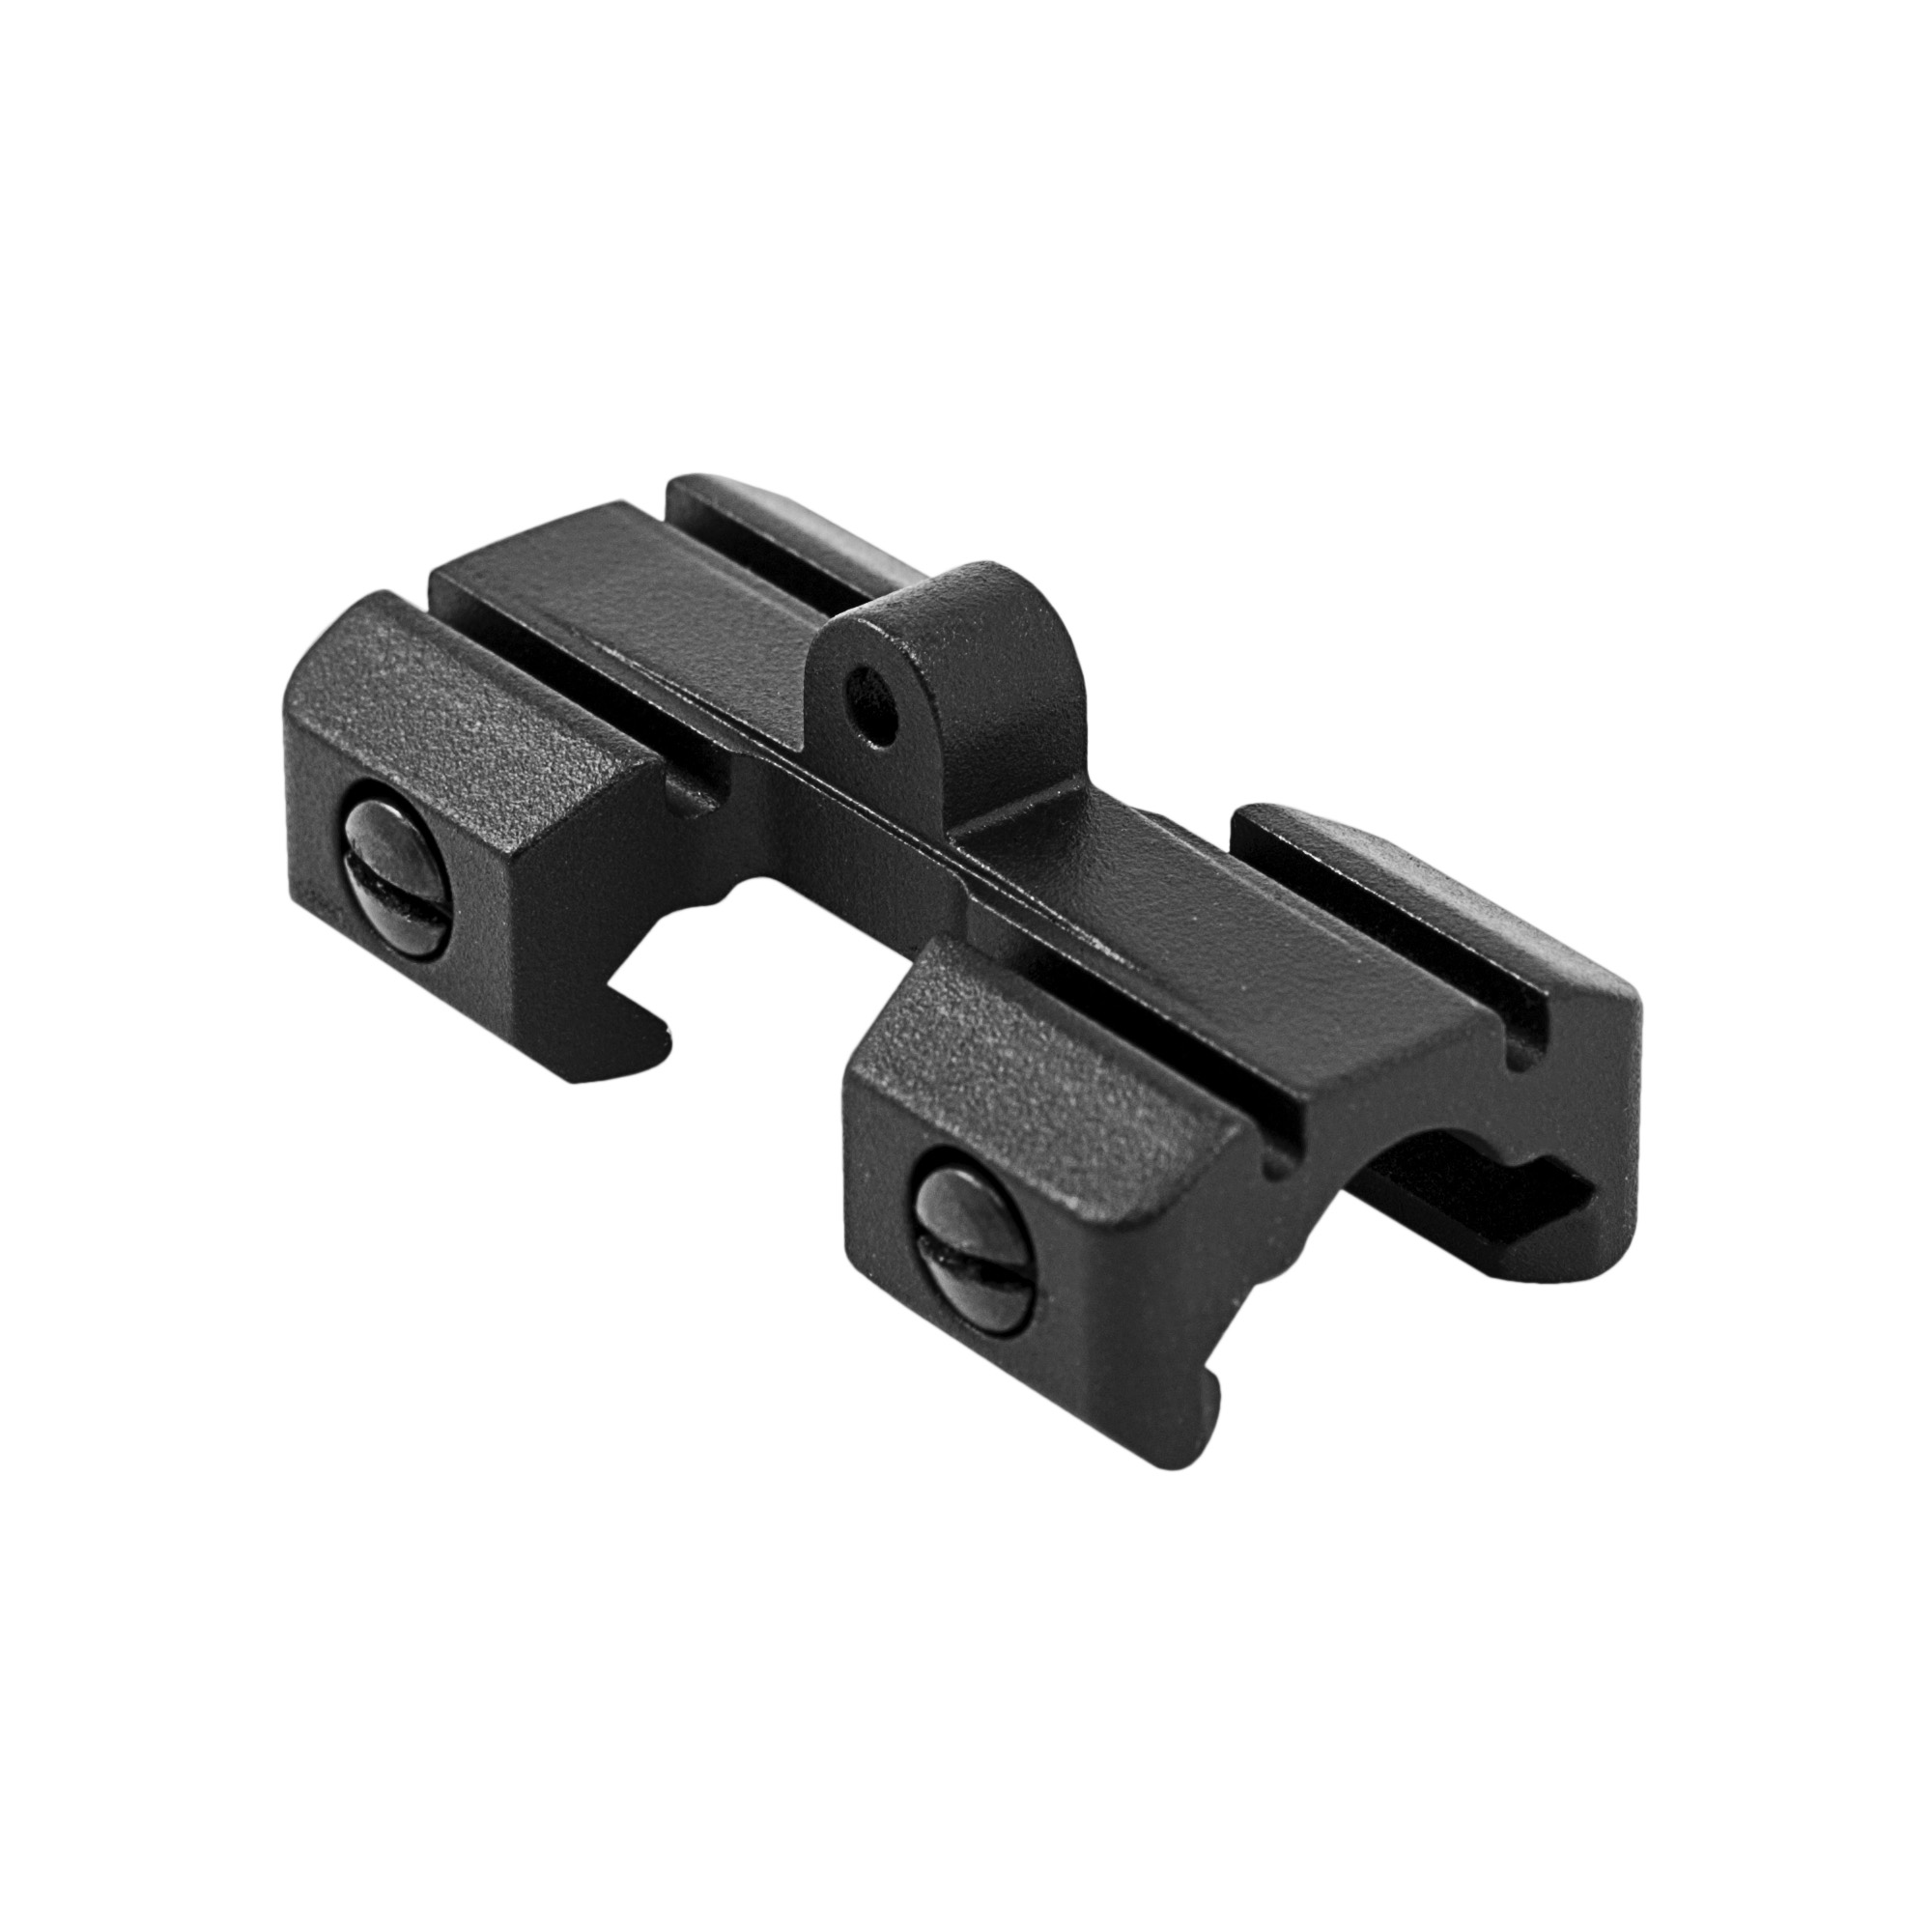 The E-VolV Bipod Mount is designed for use with MIL-STD 1913 Picatinny Rails. The E2BPM mounts a sling swivel stud onto your rail for use with bipods and sling swivels. Constructed out of lightweight 6061 aluminum that is Type 3 hard coat anodize